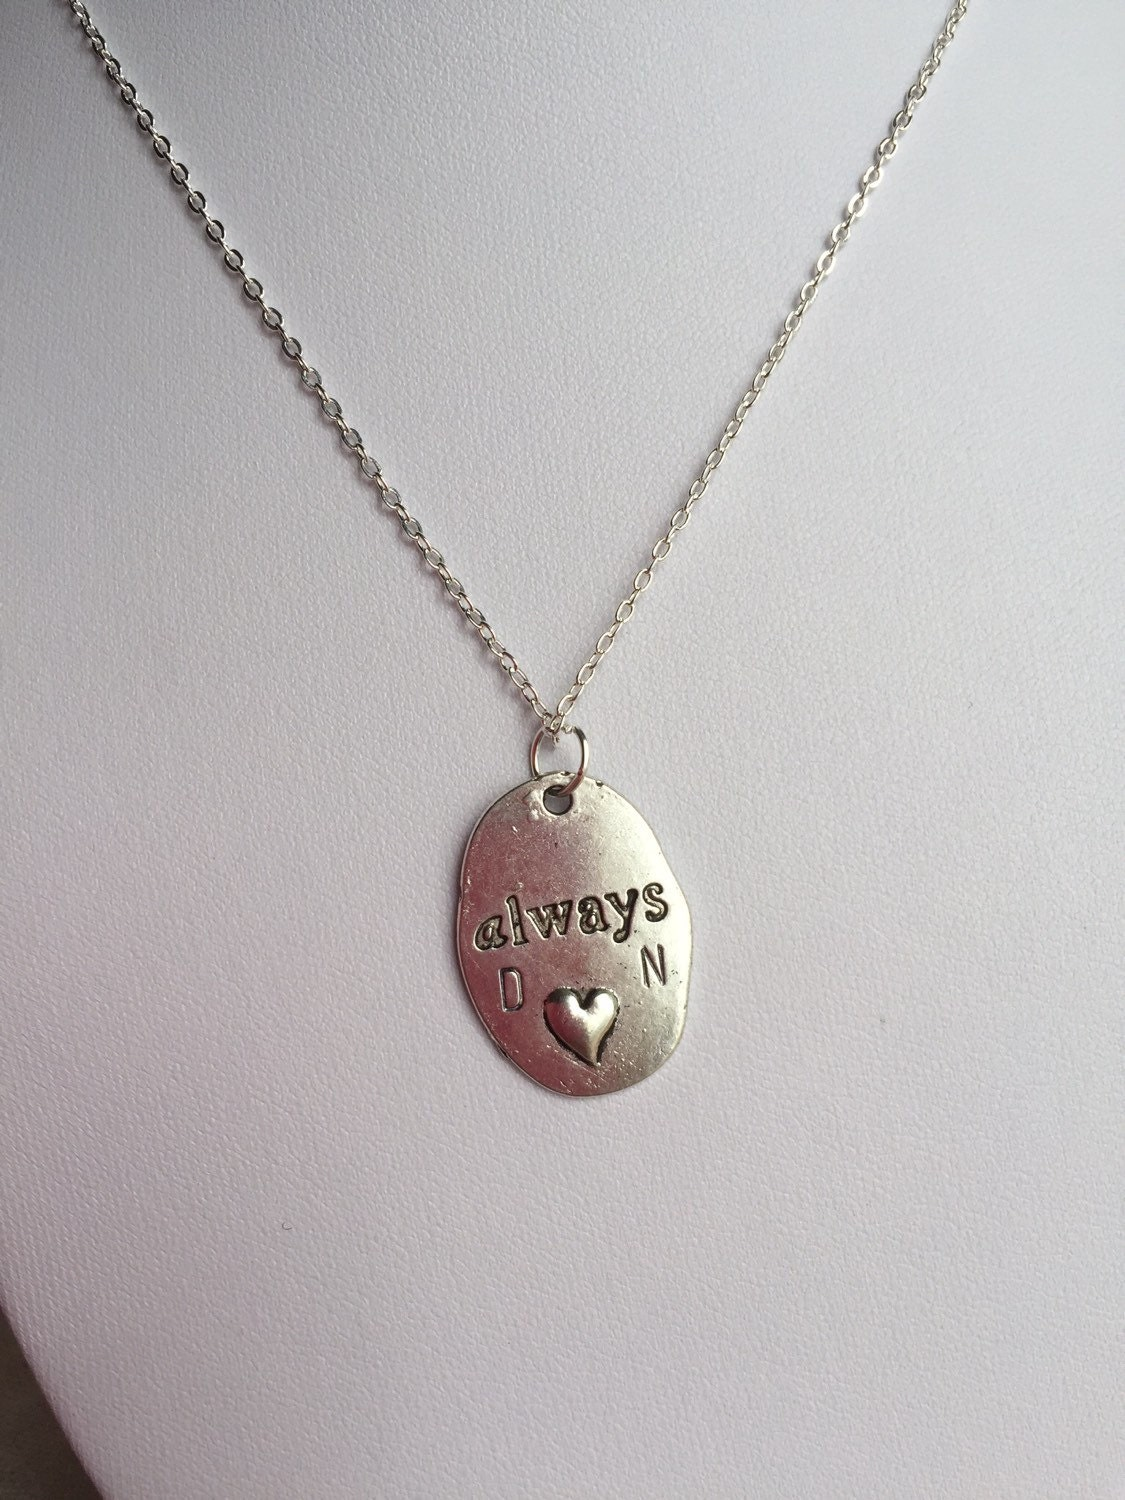 always charm necklace personalized necklace initial necklace